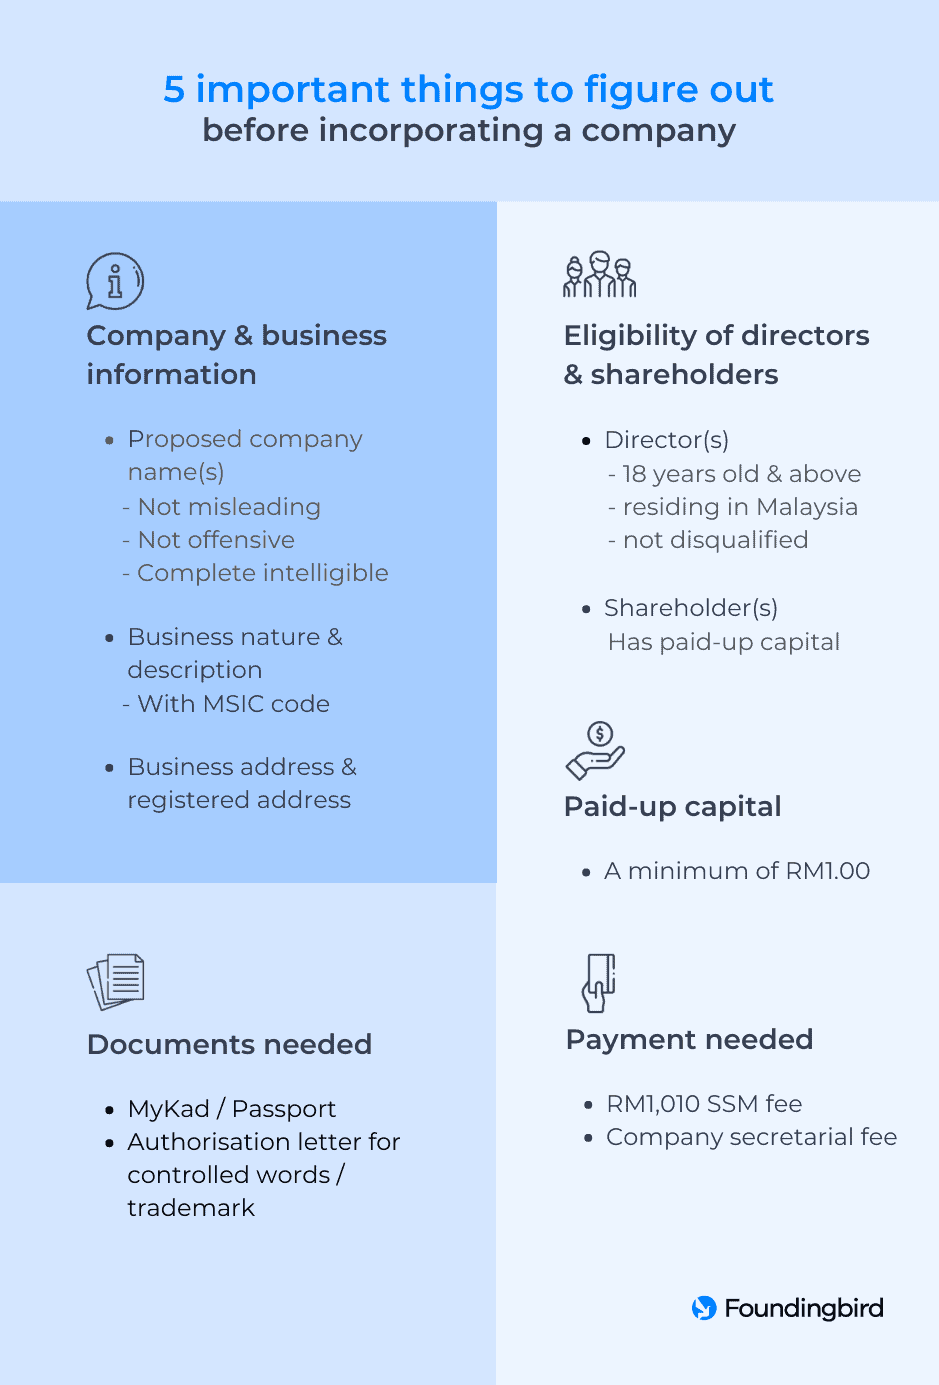 Important things to figure out before company incorporation - Infographic